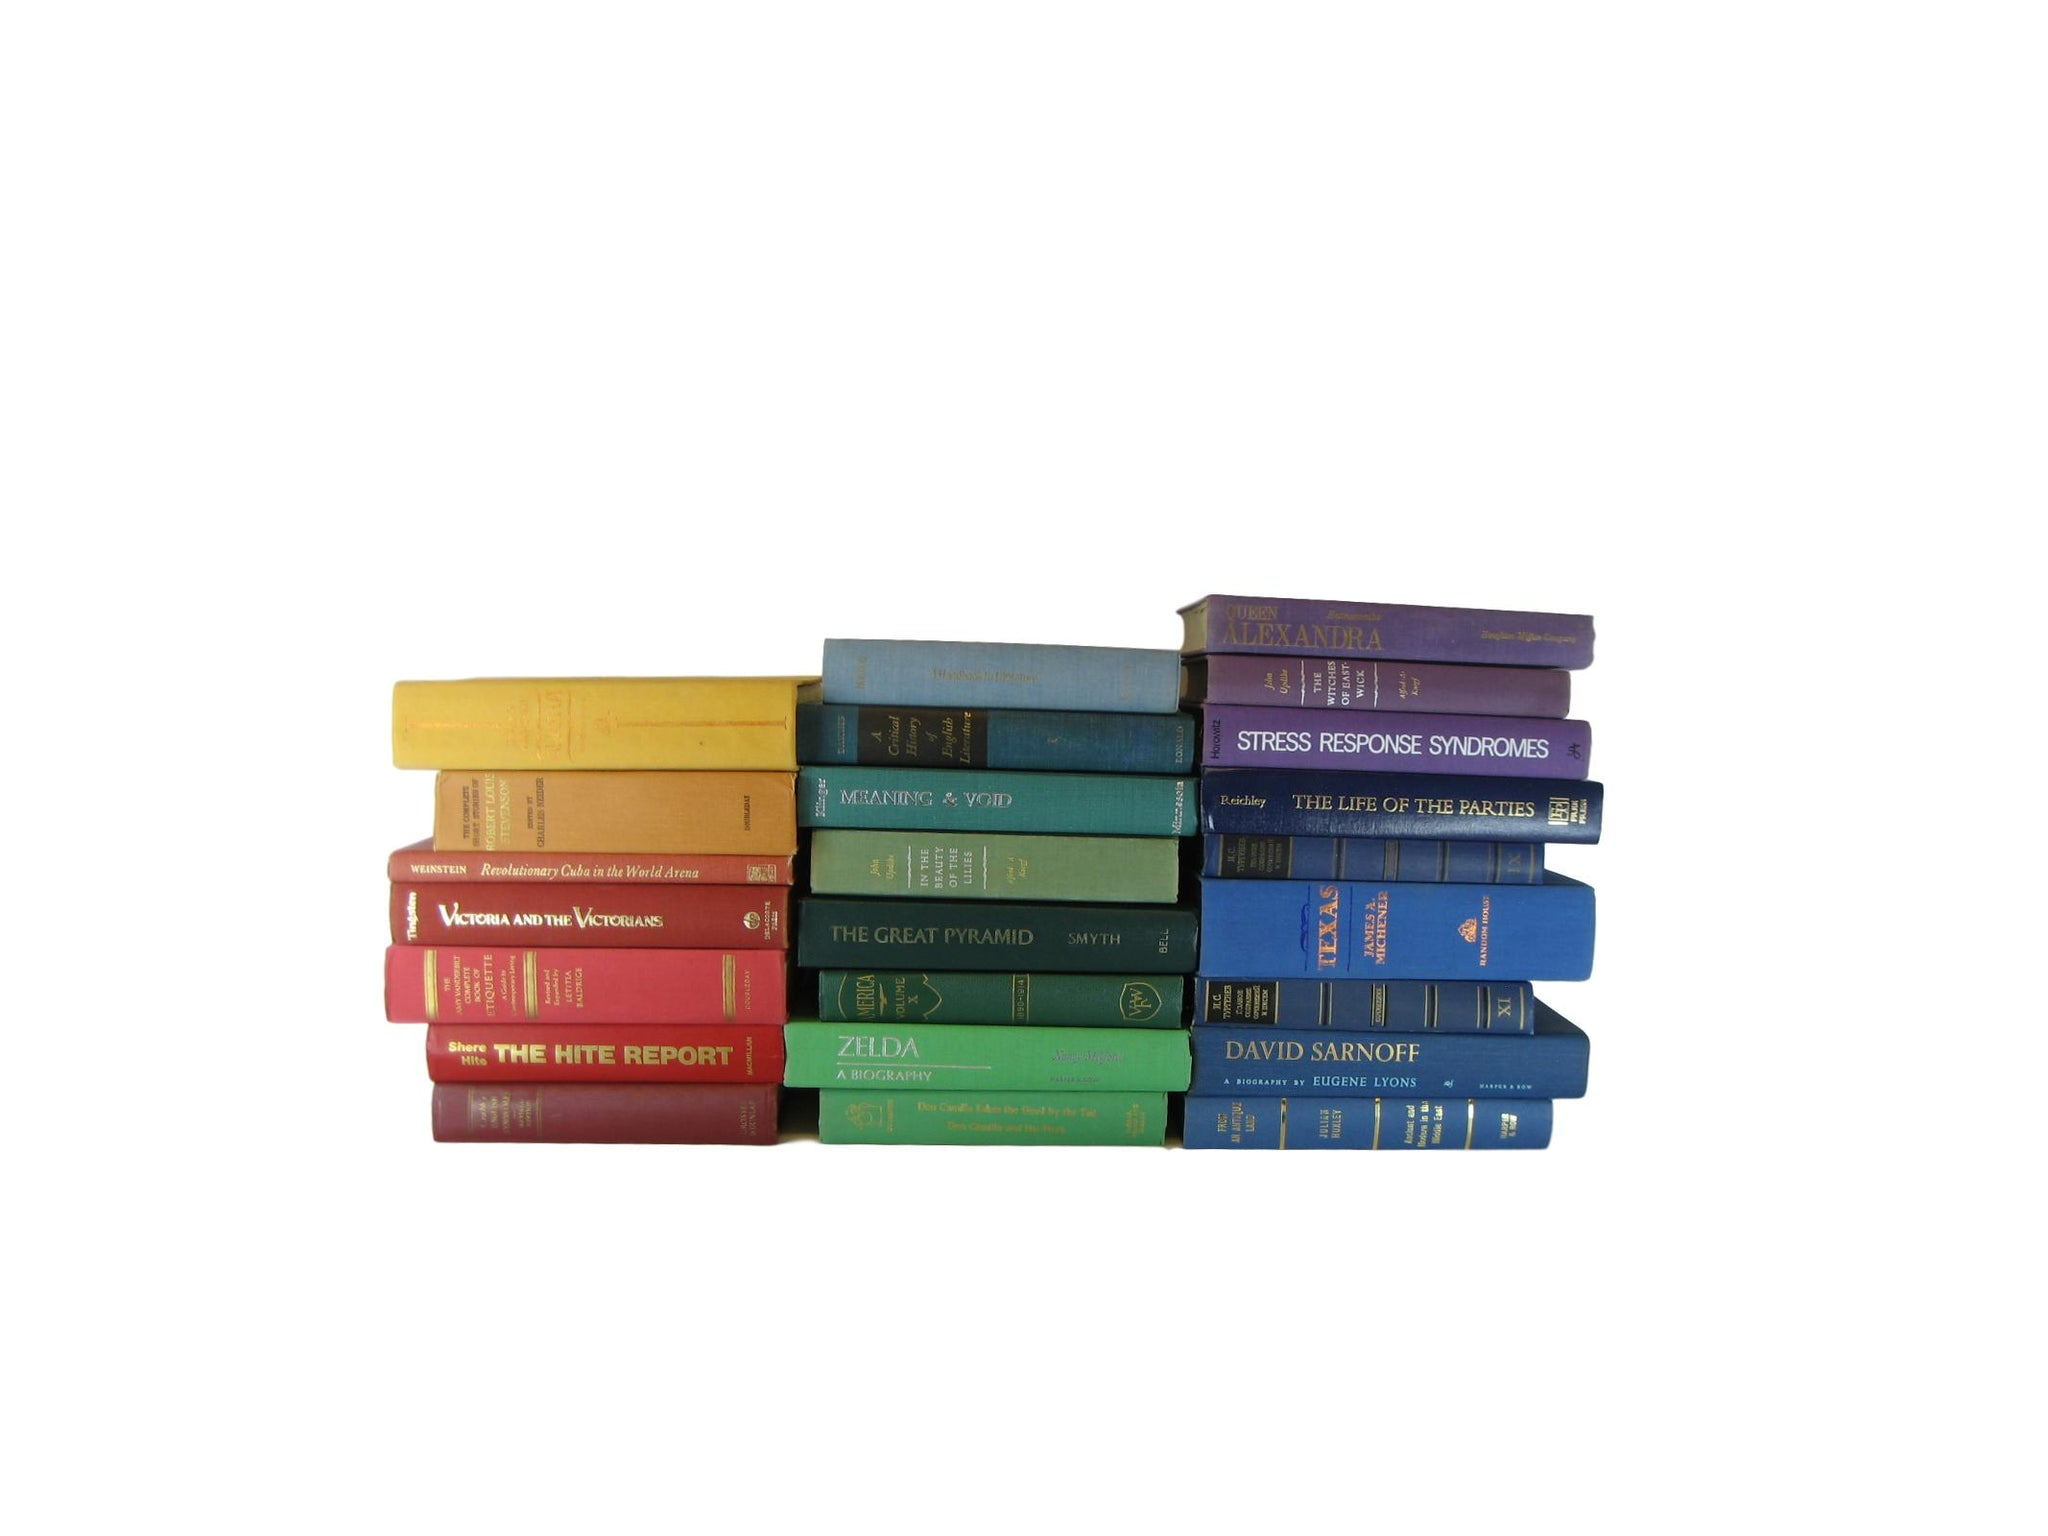 Rainbow Shades of Decorative Books by the Foot - Decades of Vintage